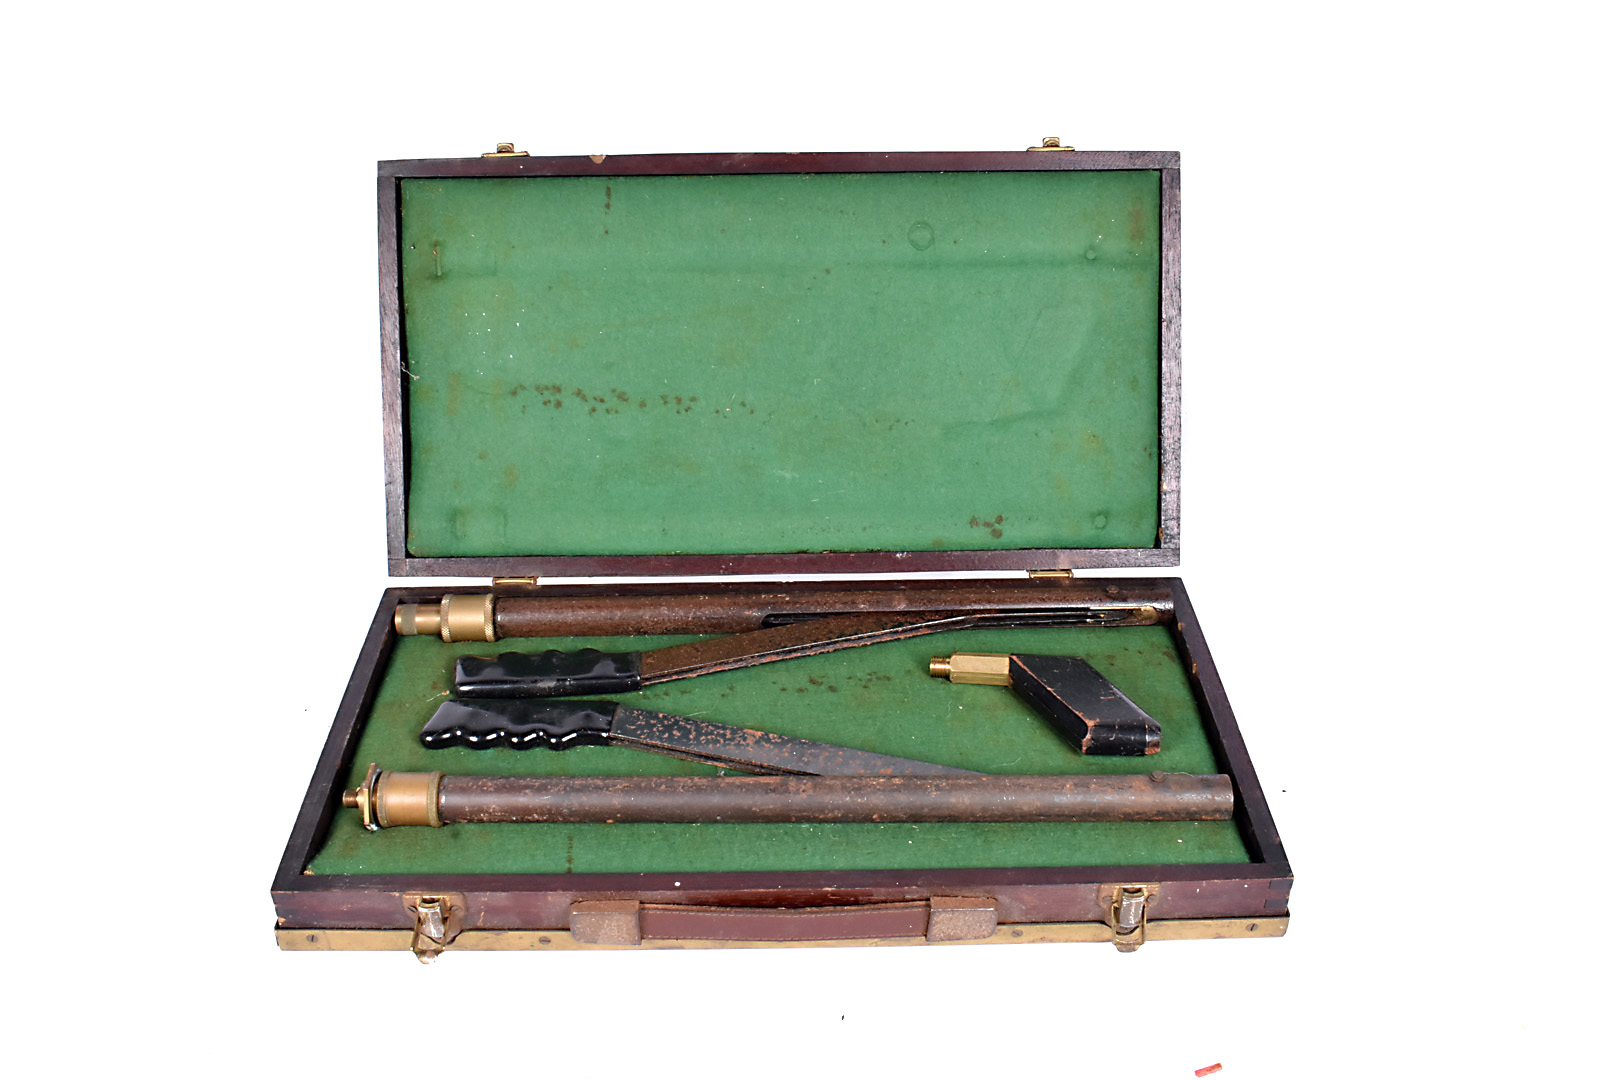 Two Brocock air pumps, in wooden case with brass edging, plus another attachment